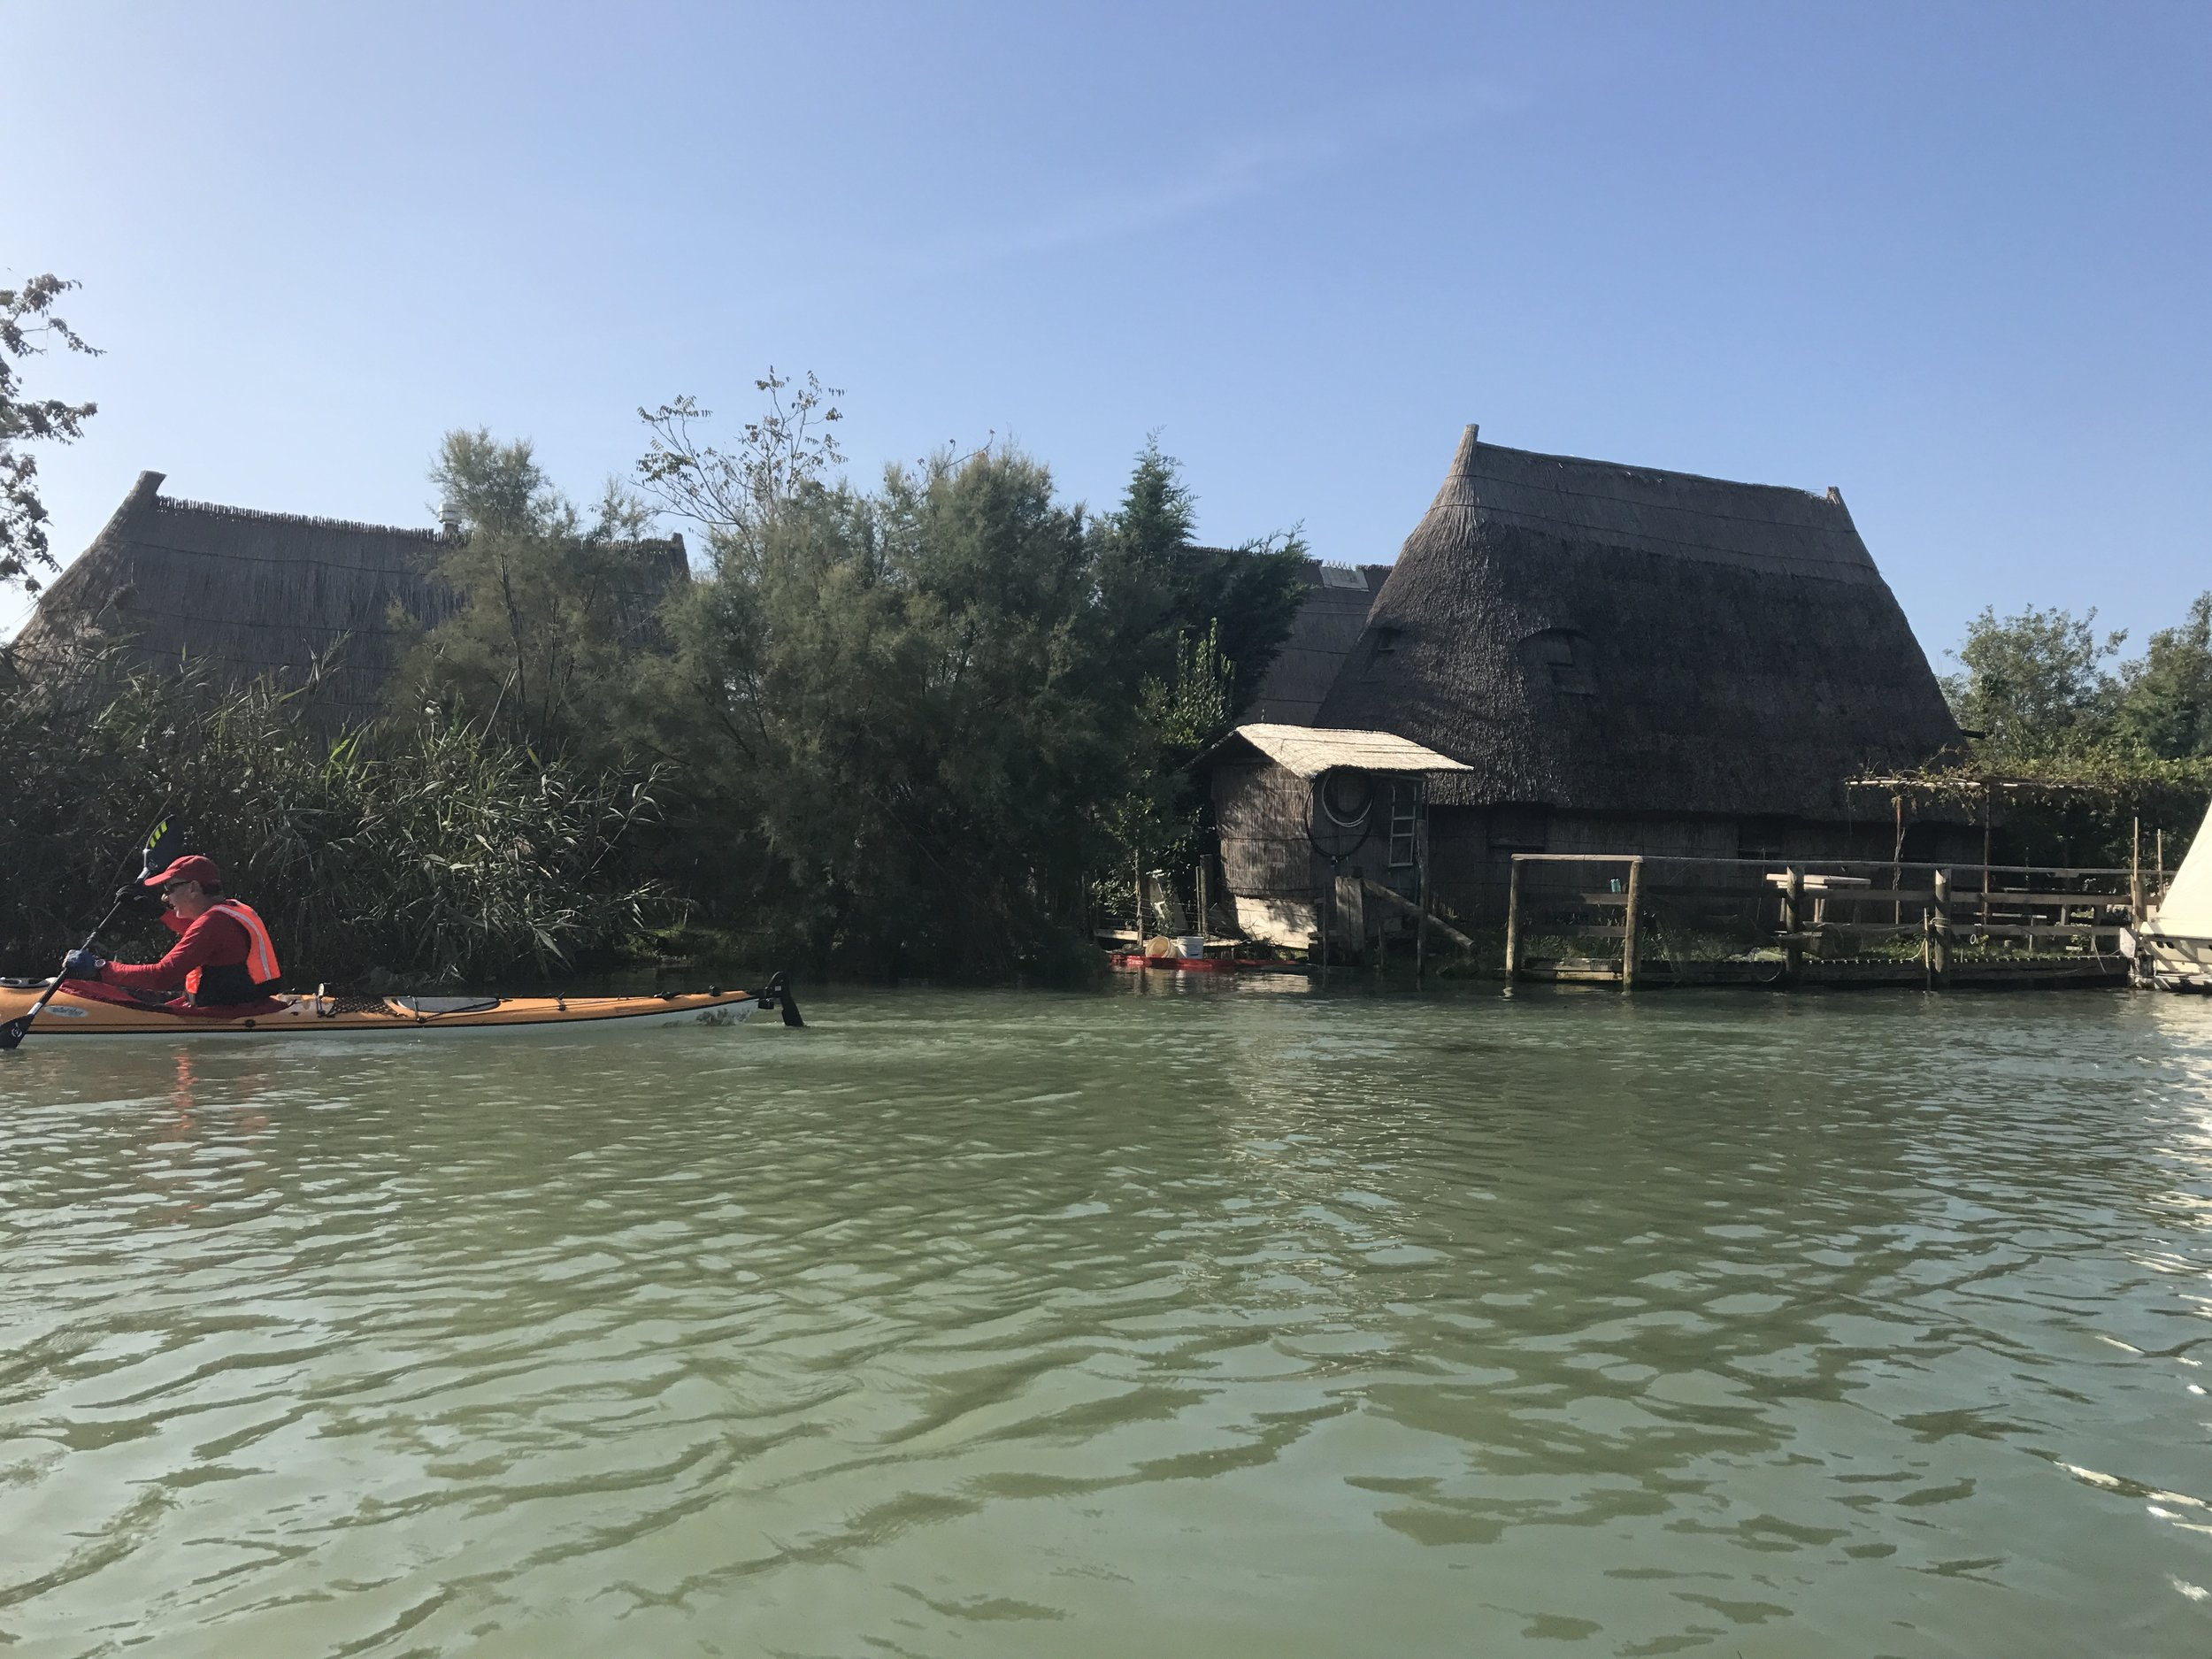 Paddle silently beside some interesting thatched structures on our way through  Caorla Veneto.